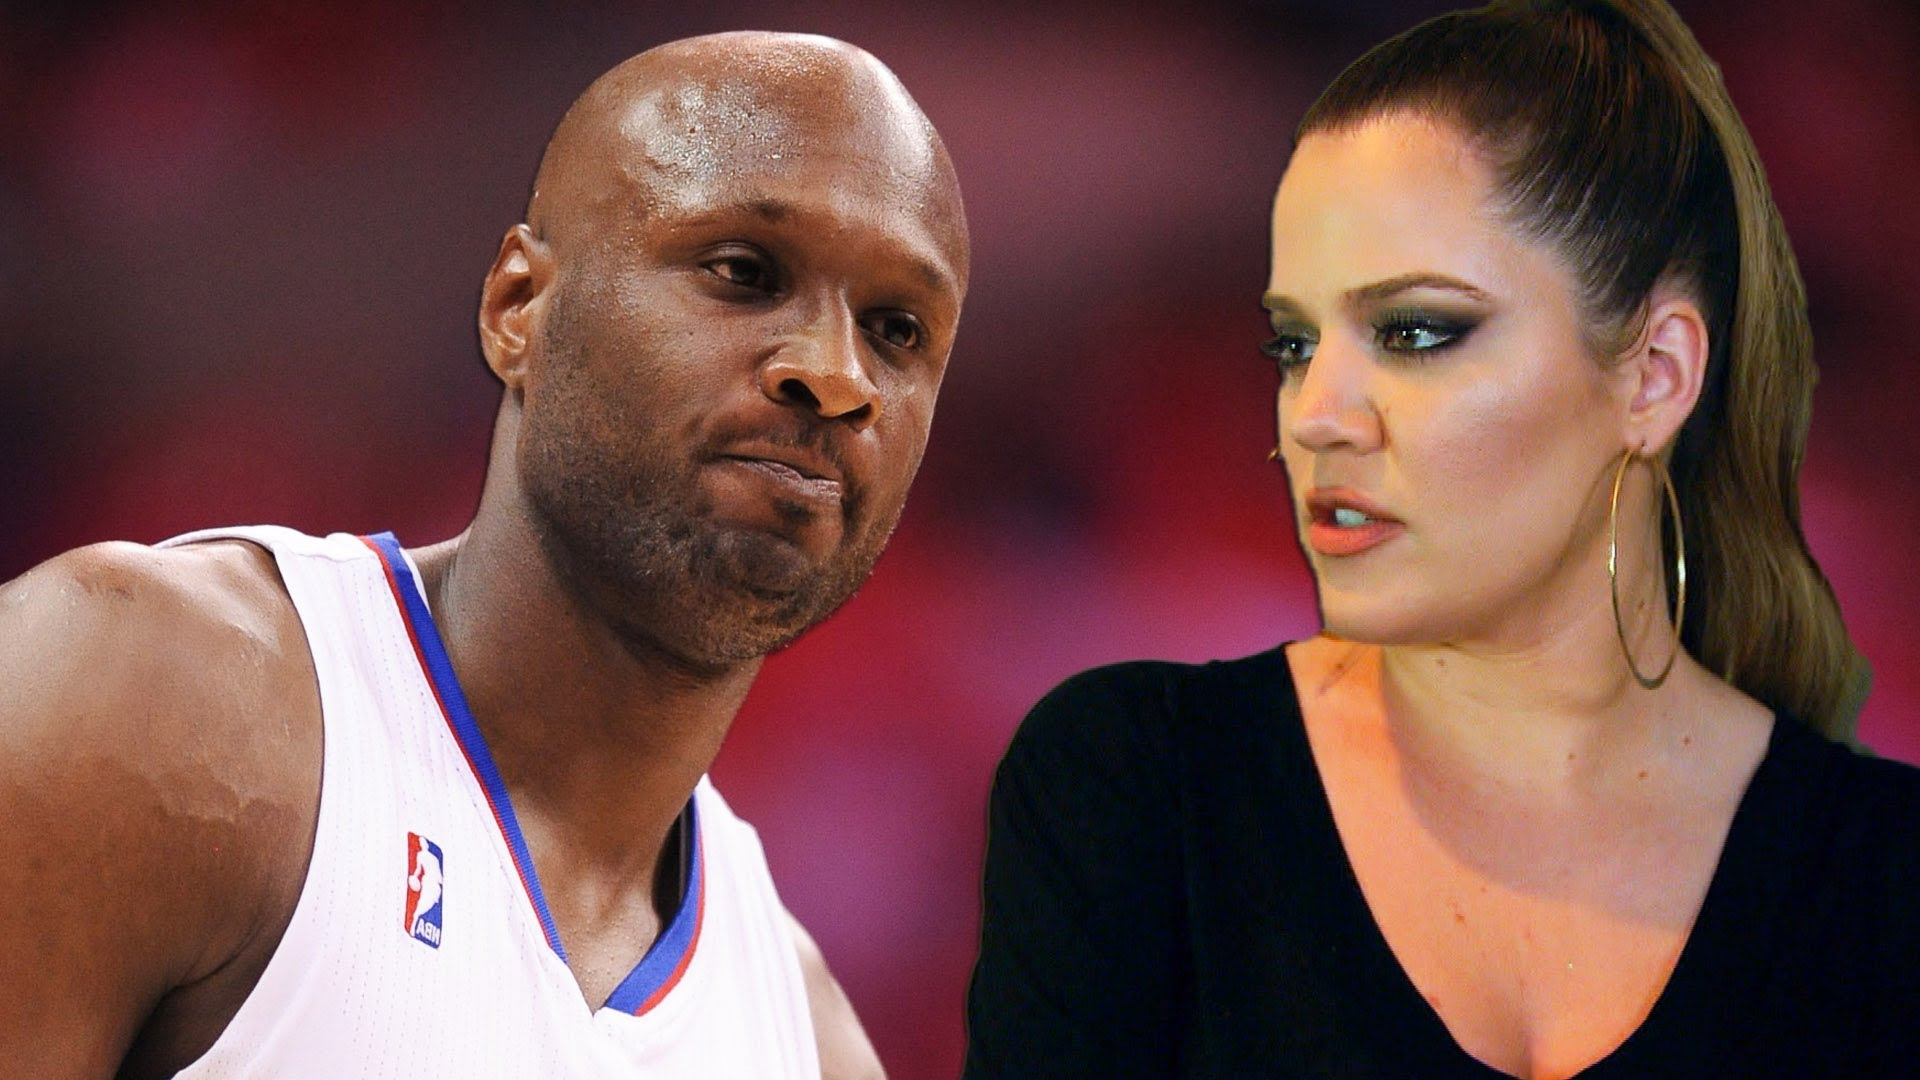 Khloé Kardashian to File for Divorce from Lamar Odom